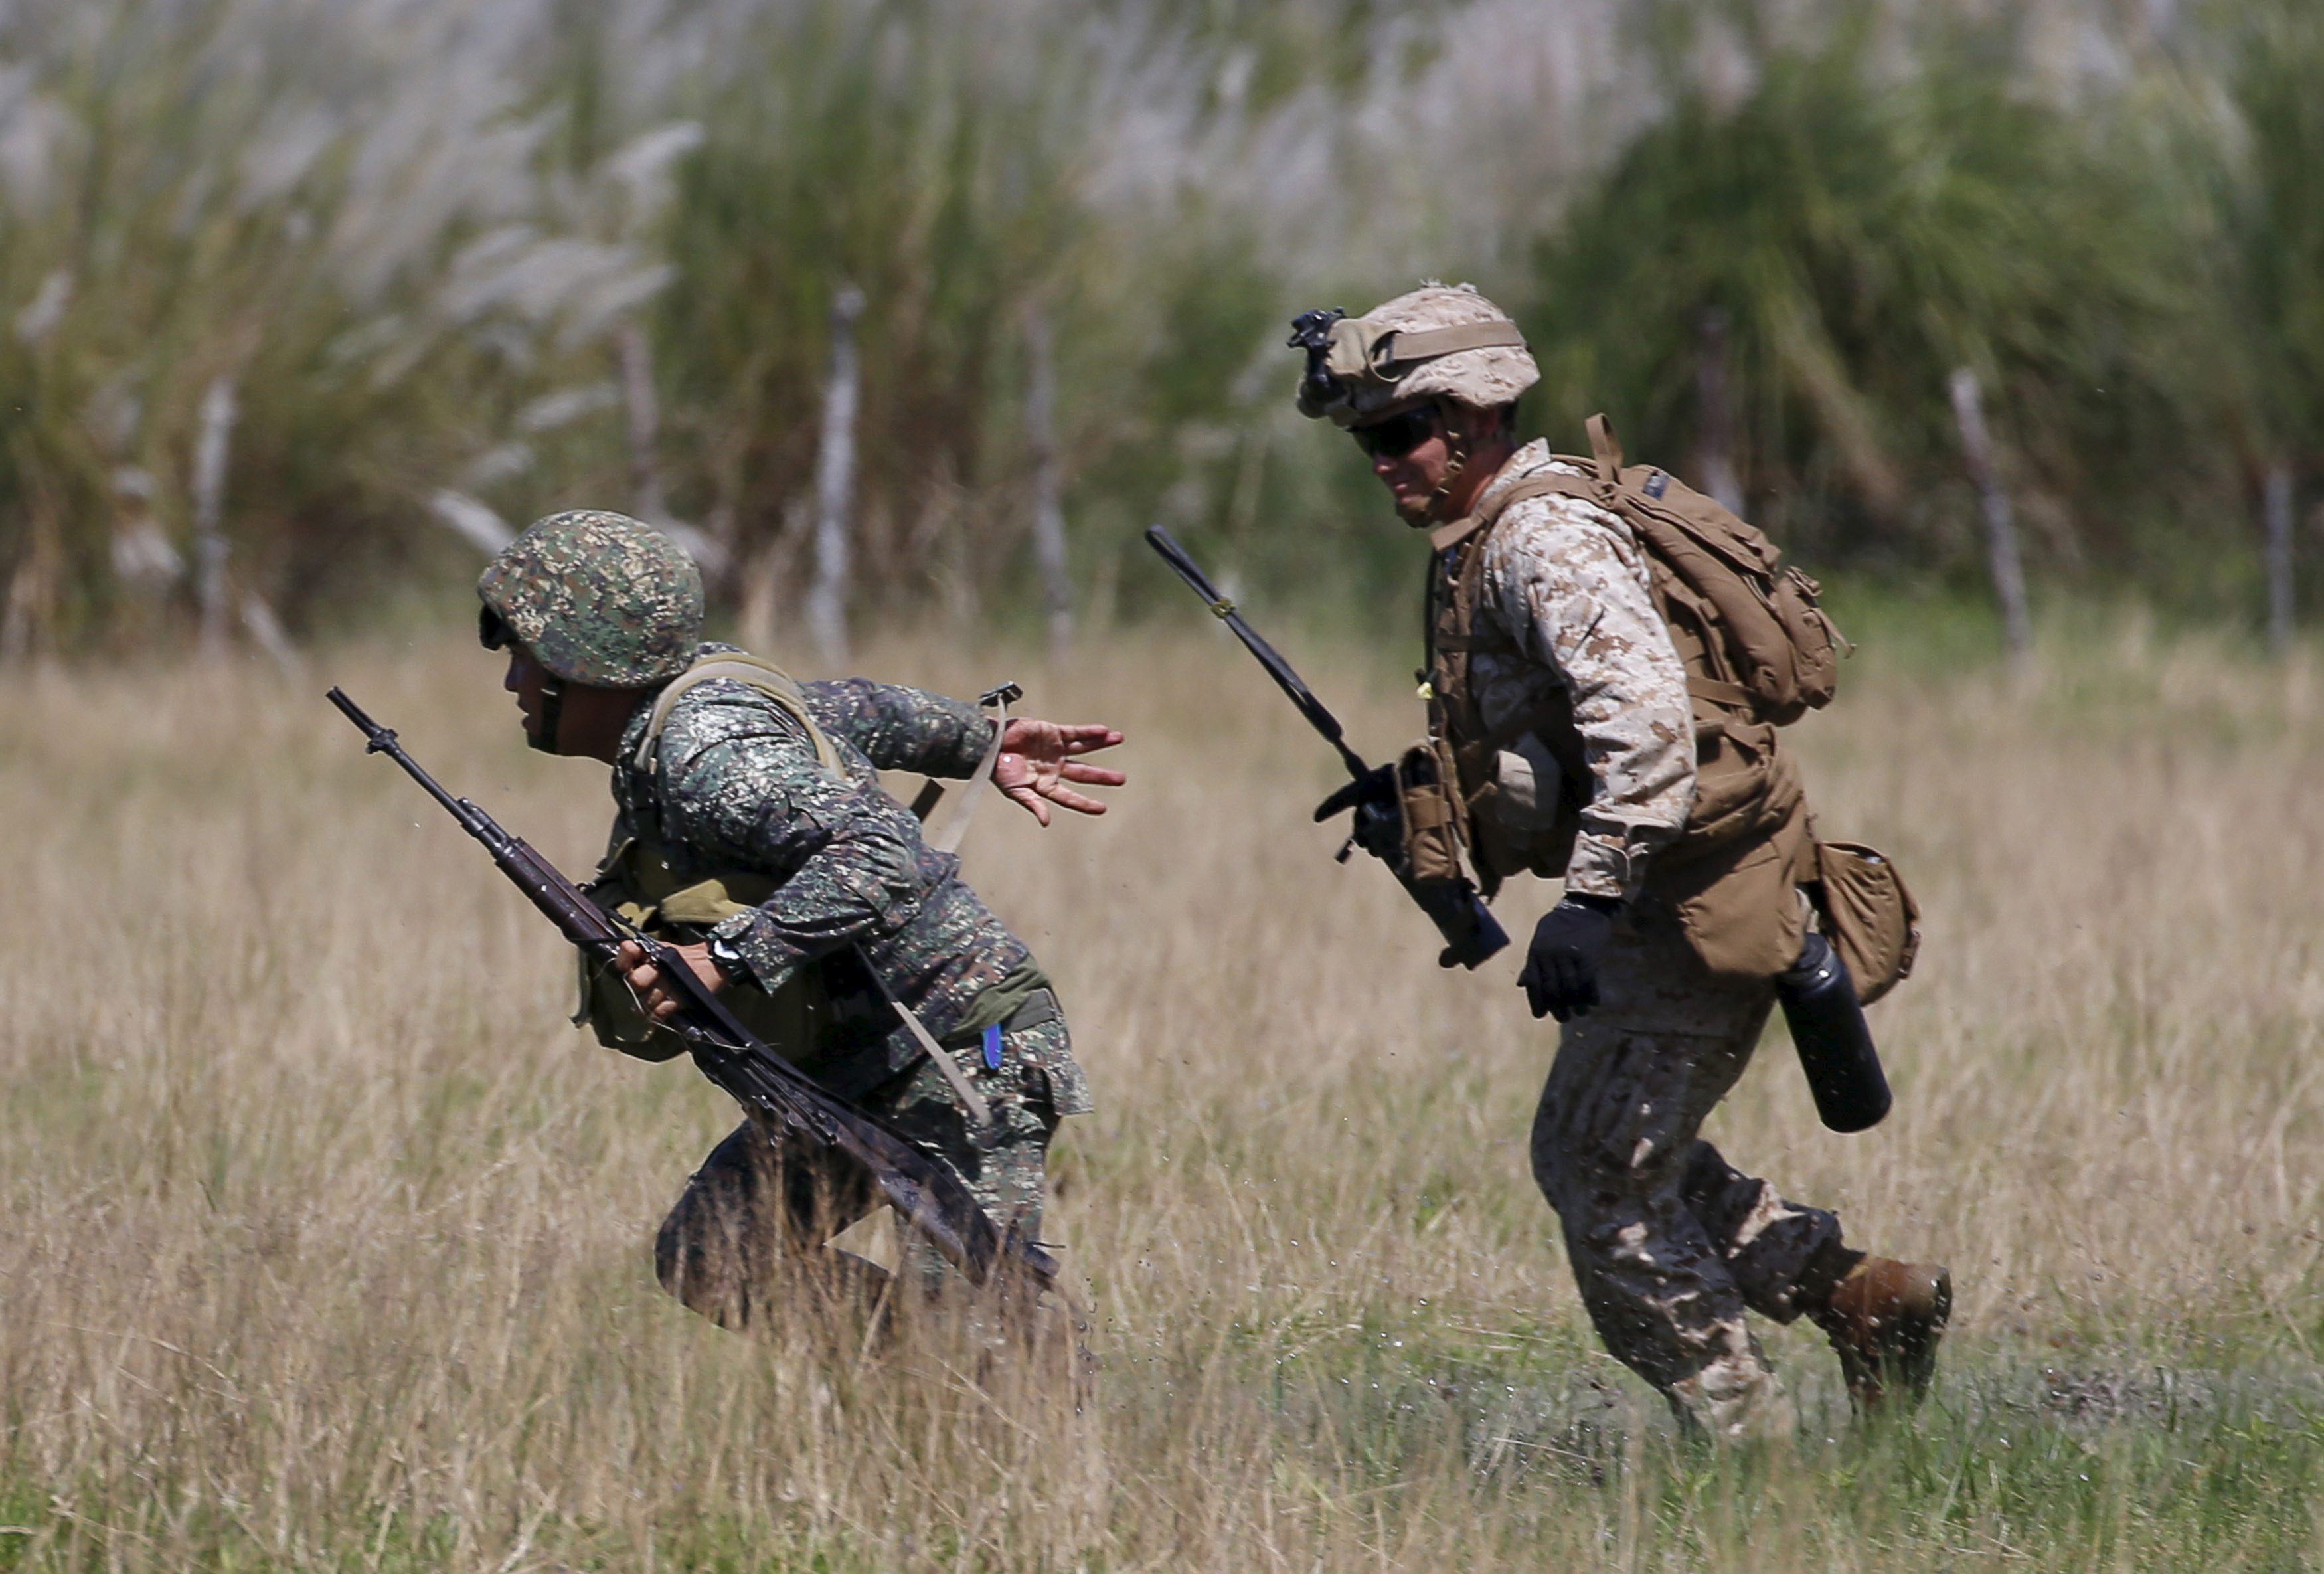 A U.S. Marine from the 3rd Marine Expeditionary Brigade runs with a Philippine soldier during assault exercises in joint drills aimed at enhancing cooperation between the allies at a Philippine Naval base San Antonio